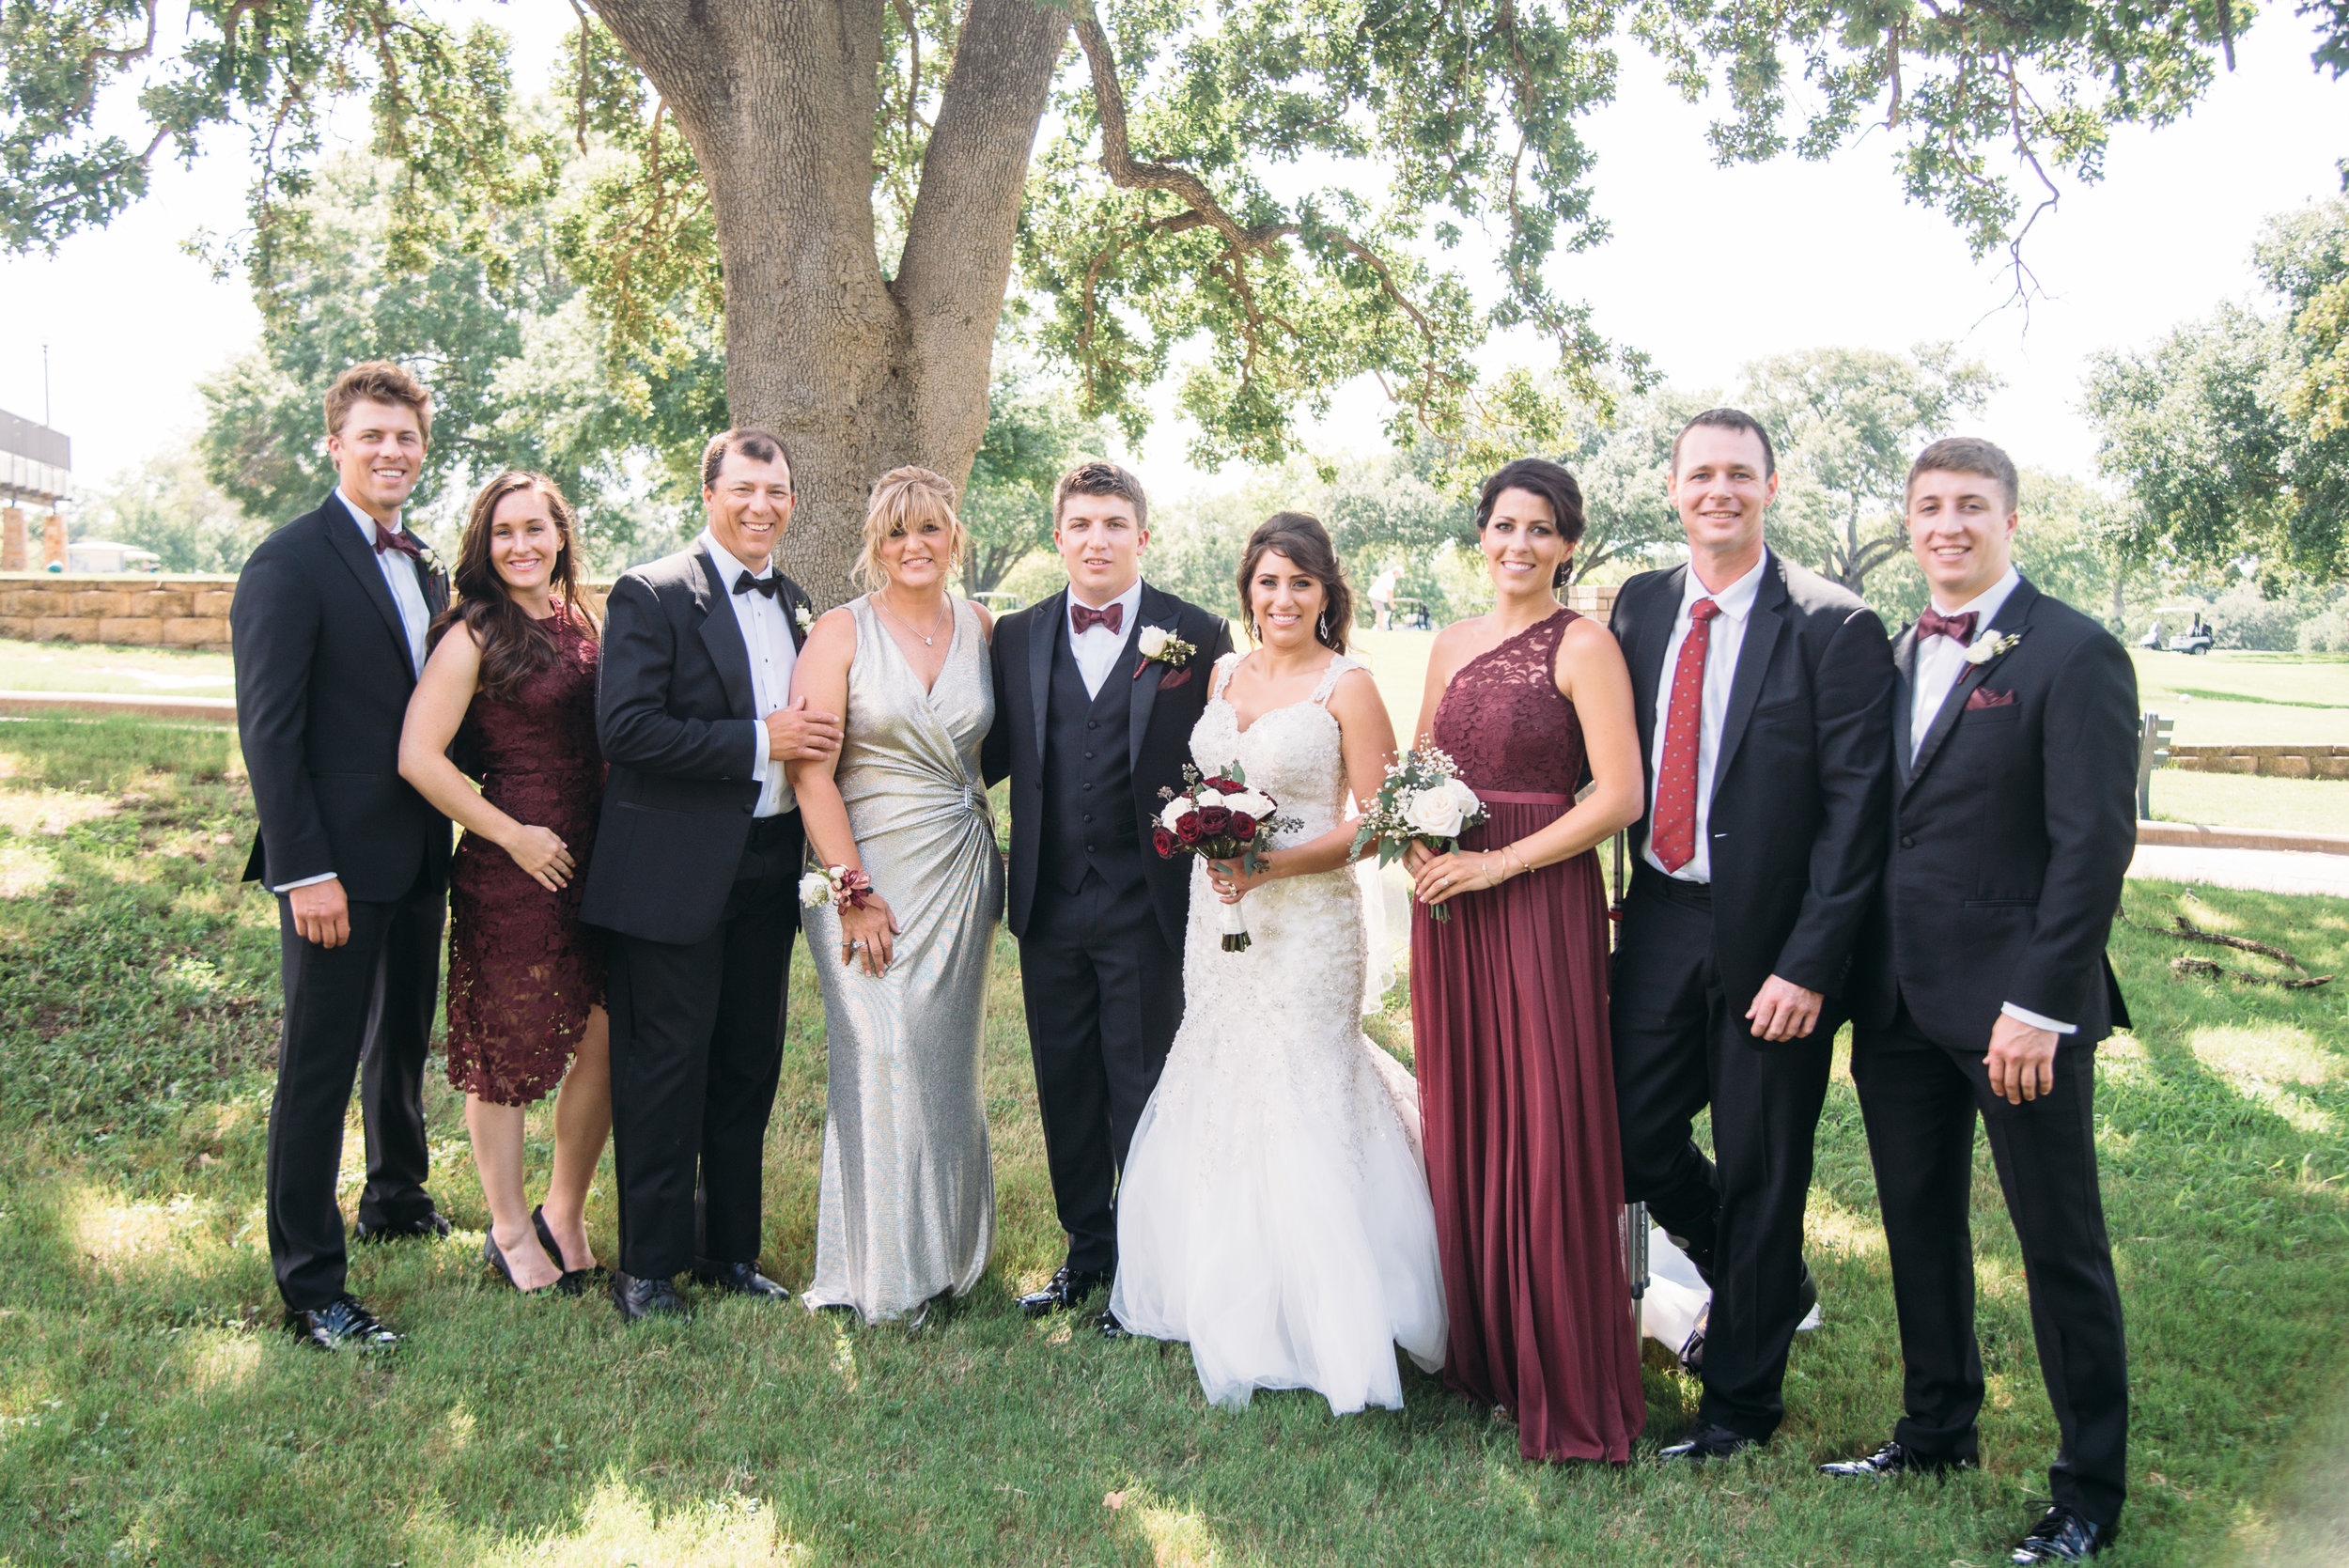 PhillipsEventCenter-AggieWedding-CollegeStationPhotographer_26.jpg